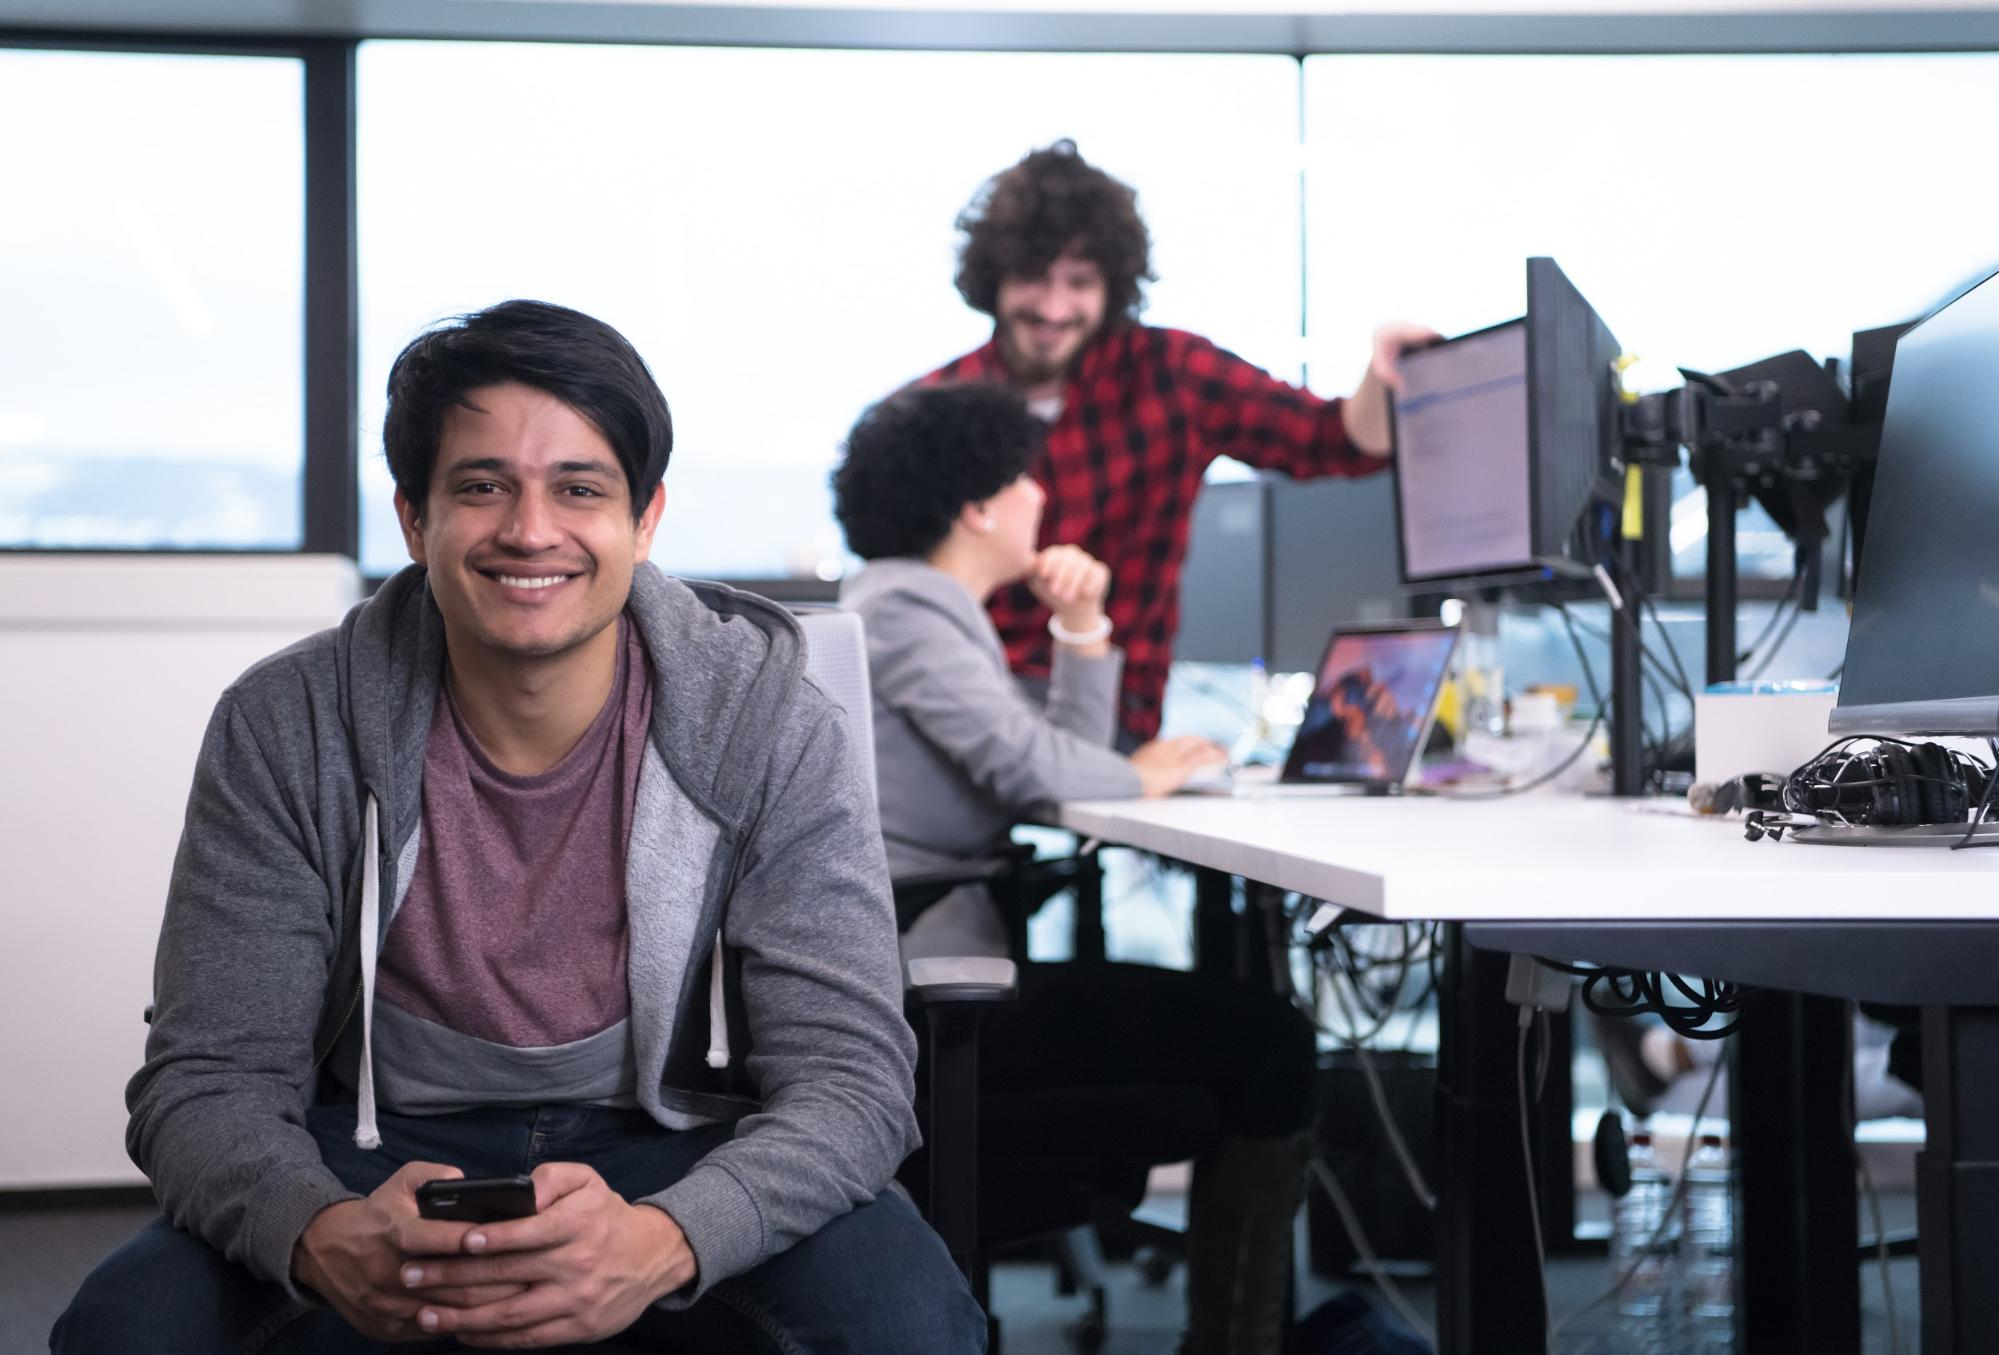 software developer internship: Man holding his mobile phone and smiling at the camera